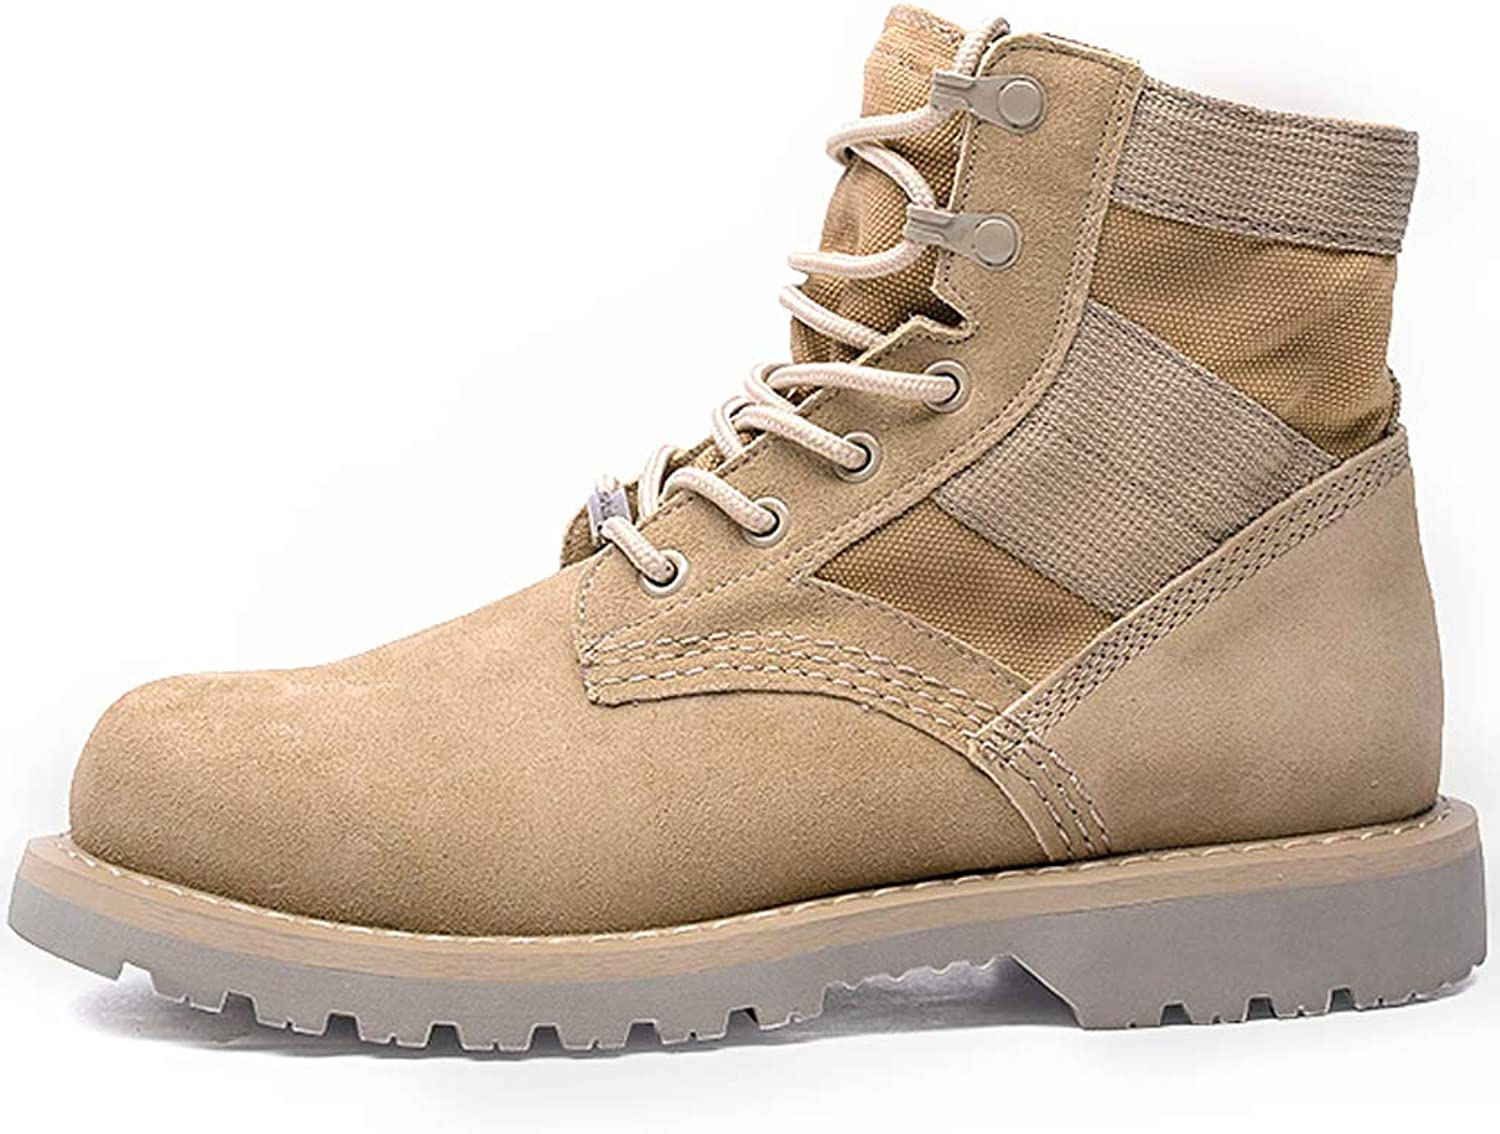 Martin boots, men's leather mid-boots - desert tooling tide men's boots - wild military boots